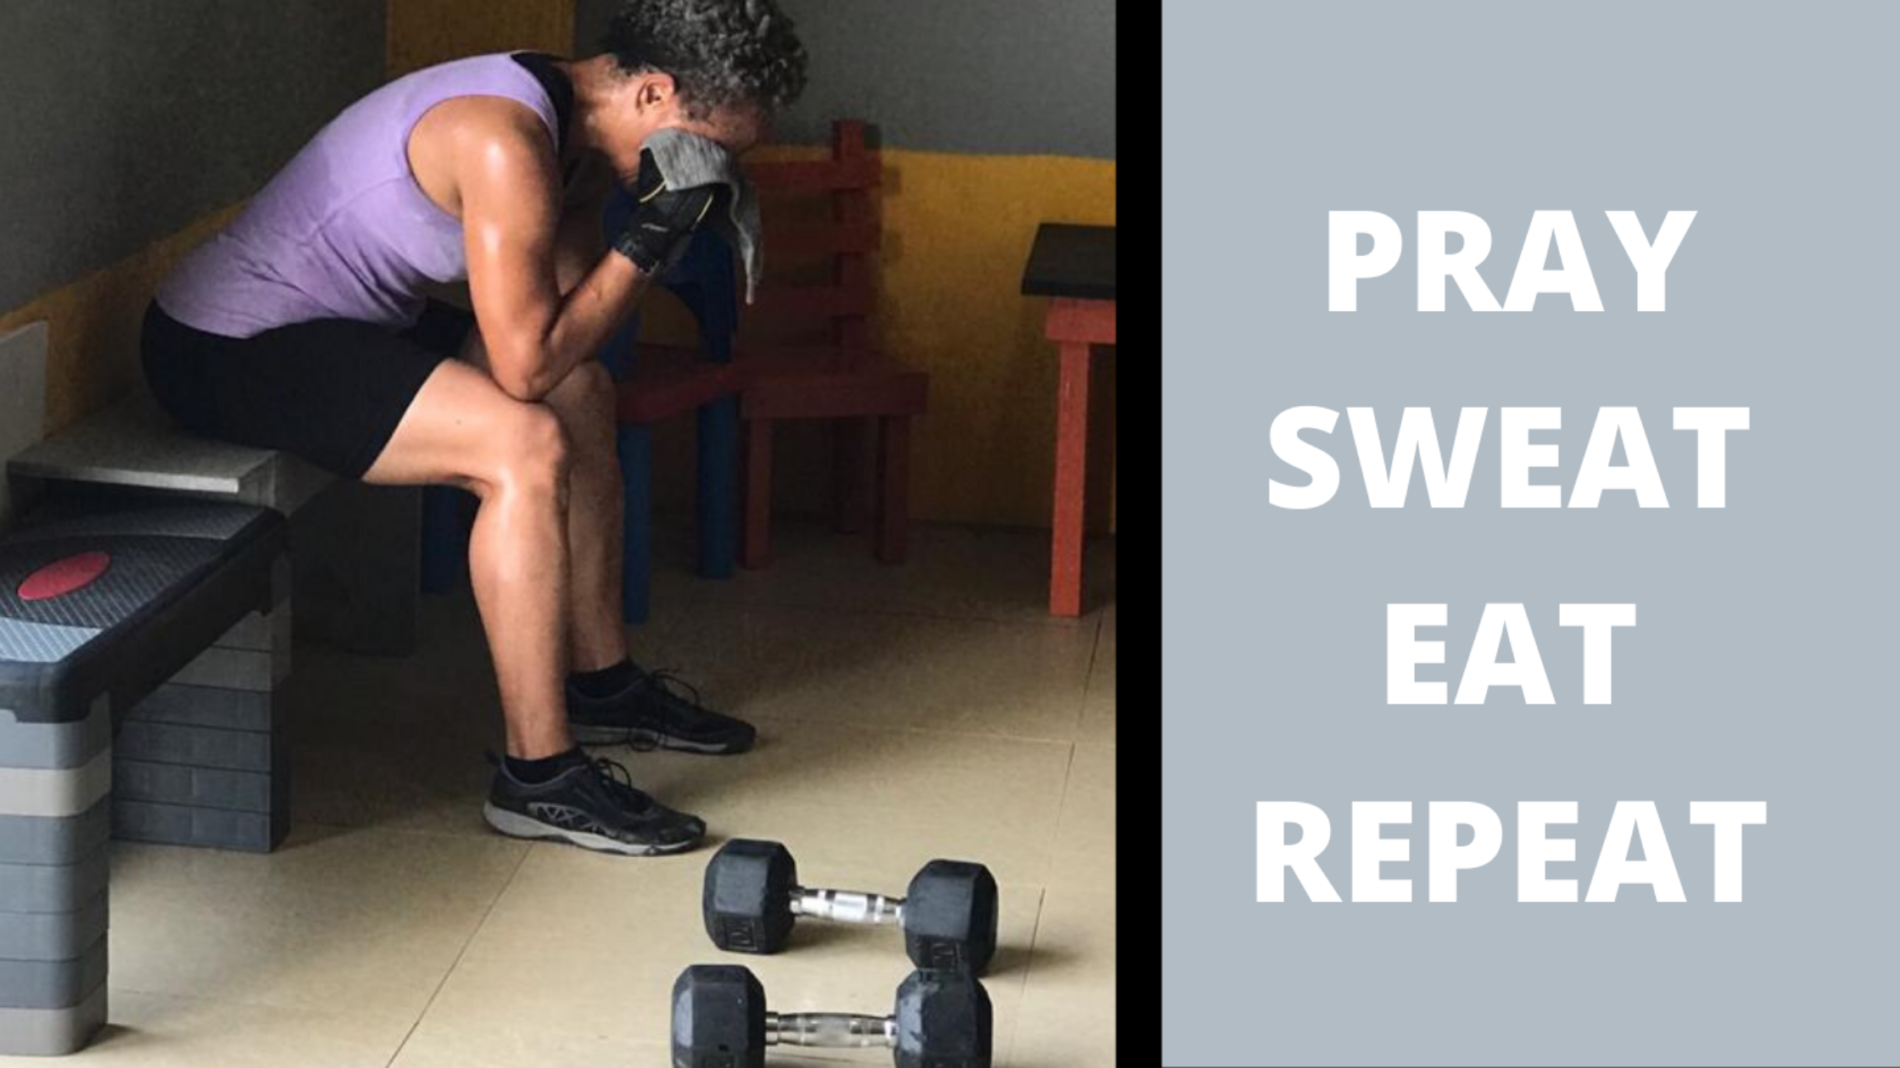 Pray Sweat Eat Repeat